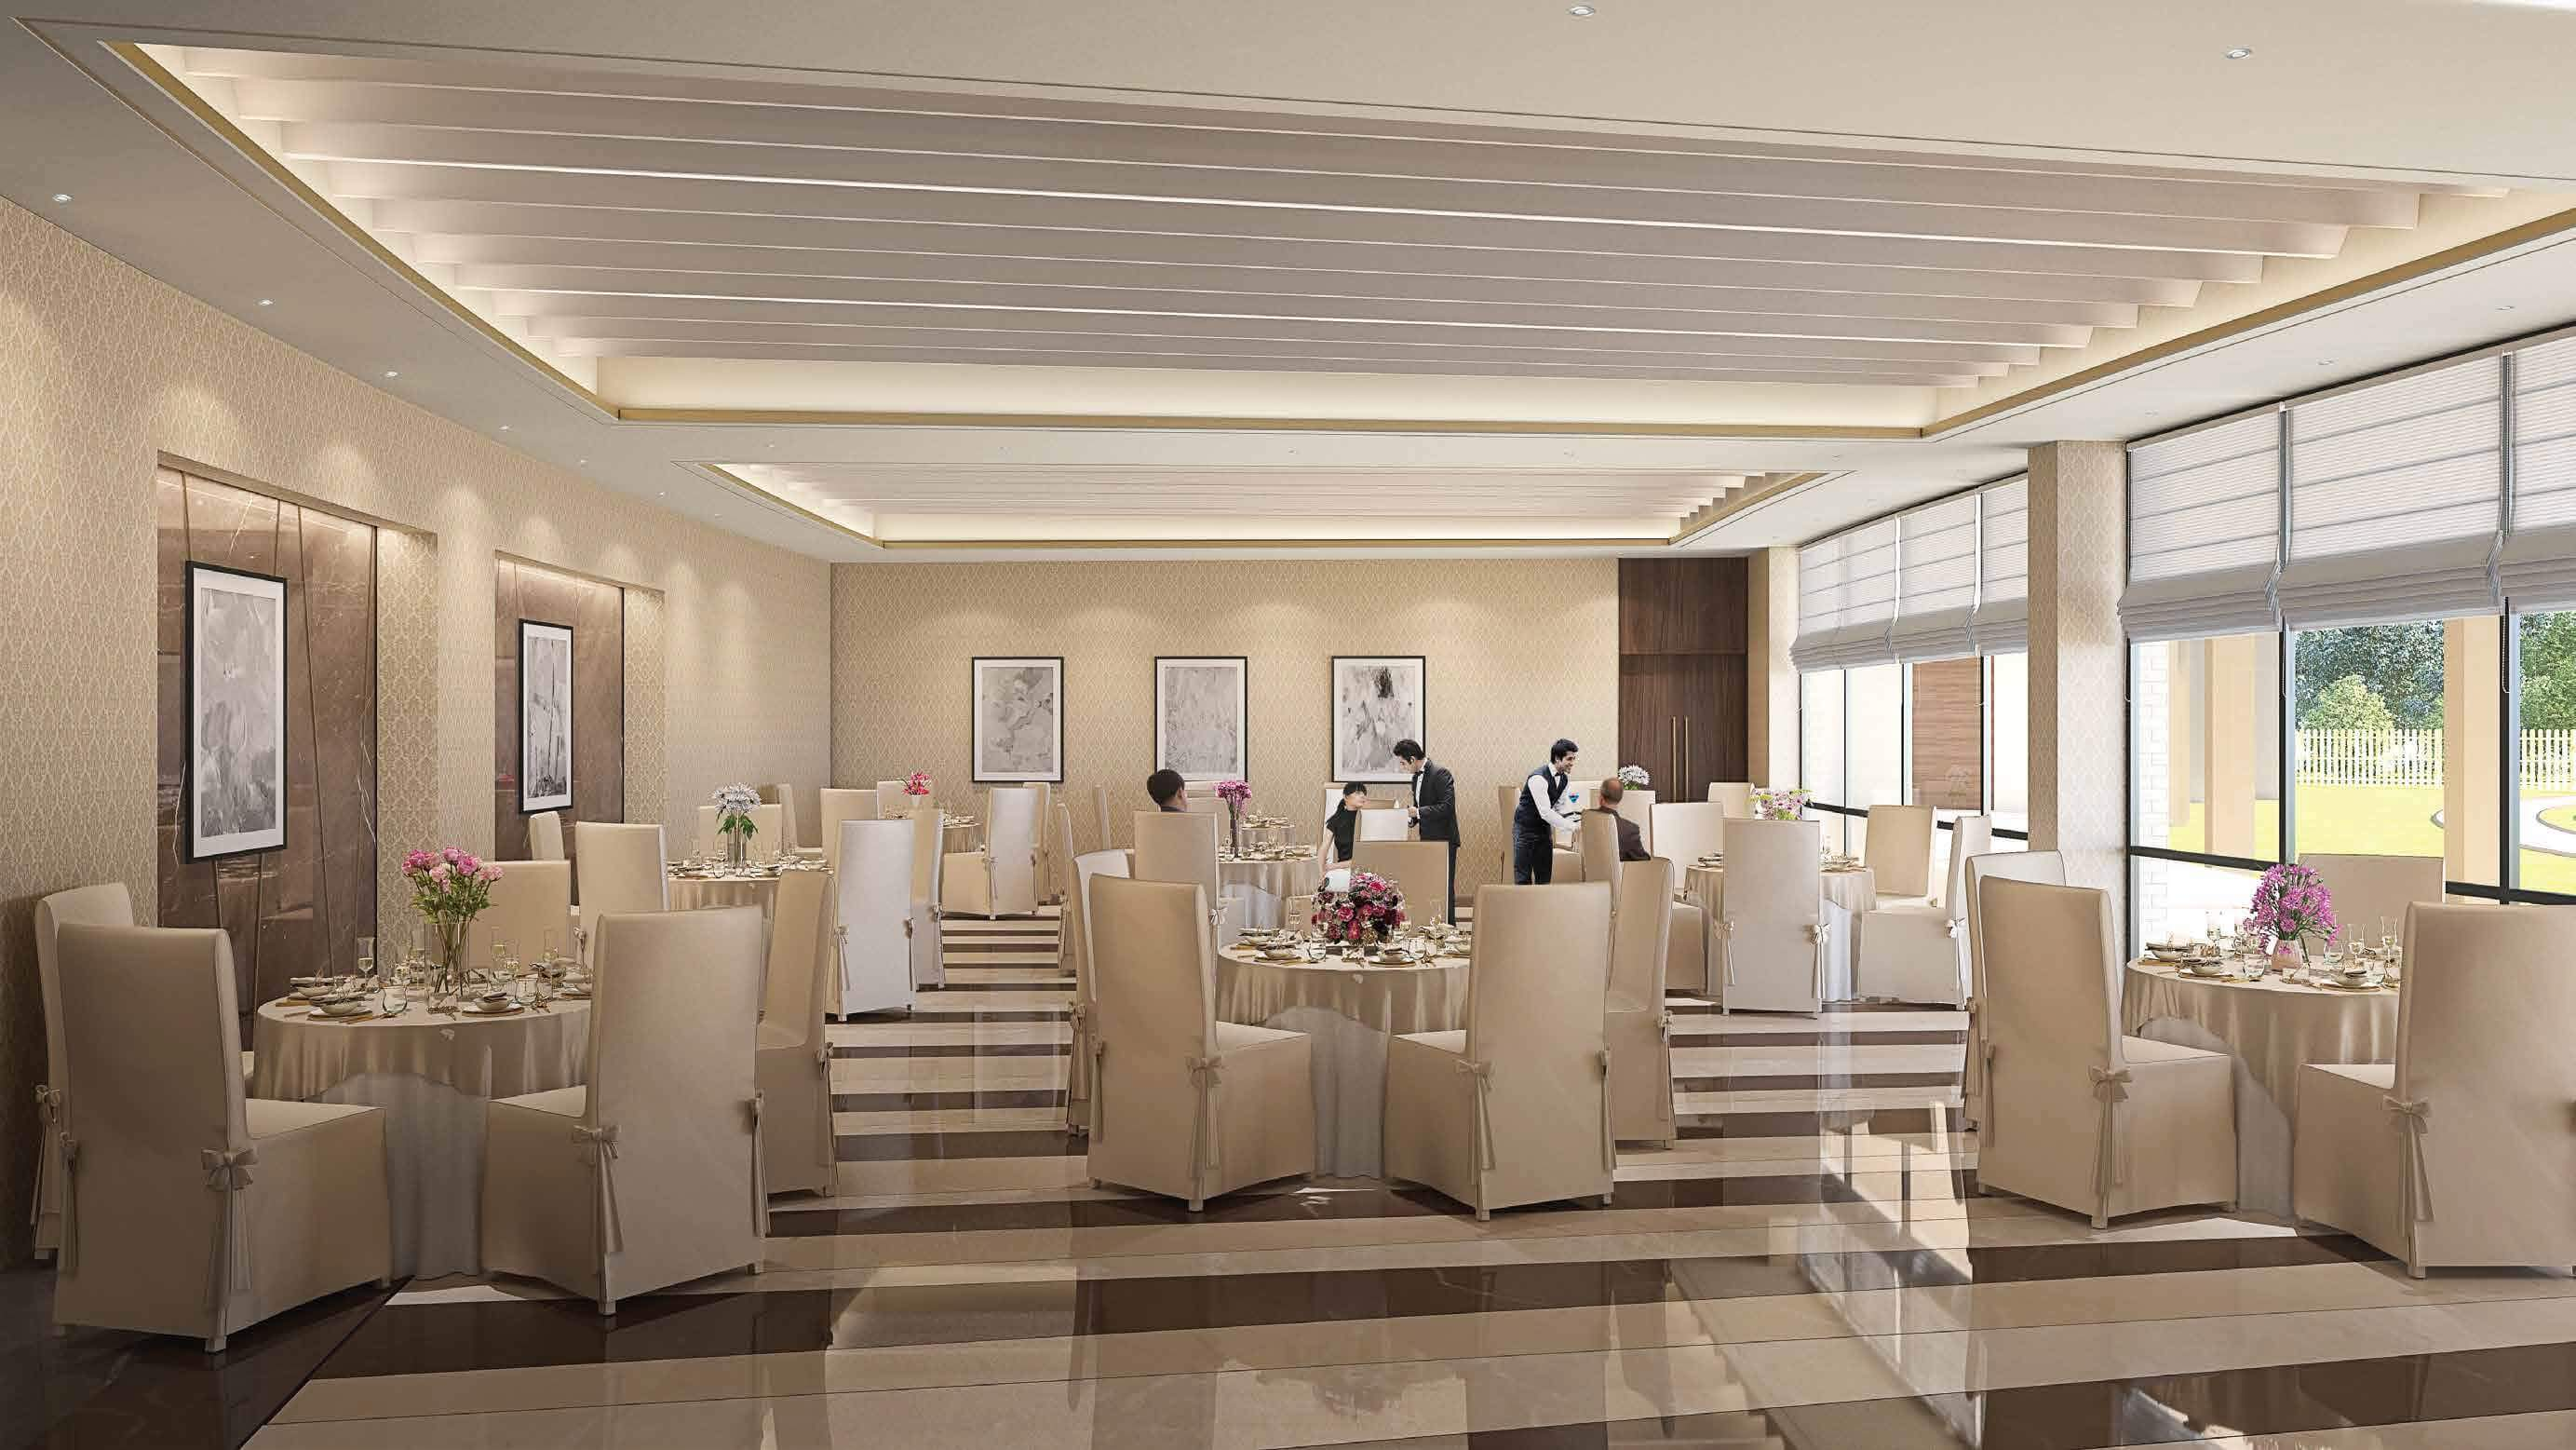 lodha upper thane tiara d amenities features10